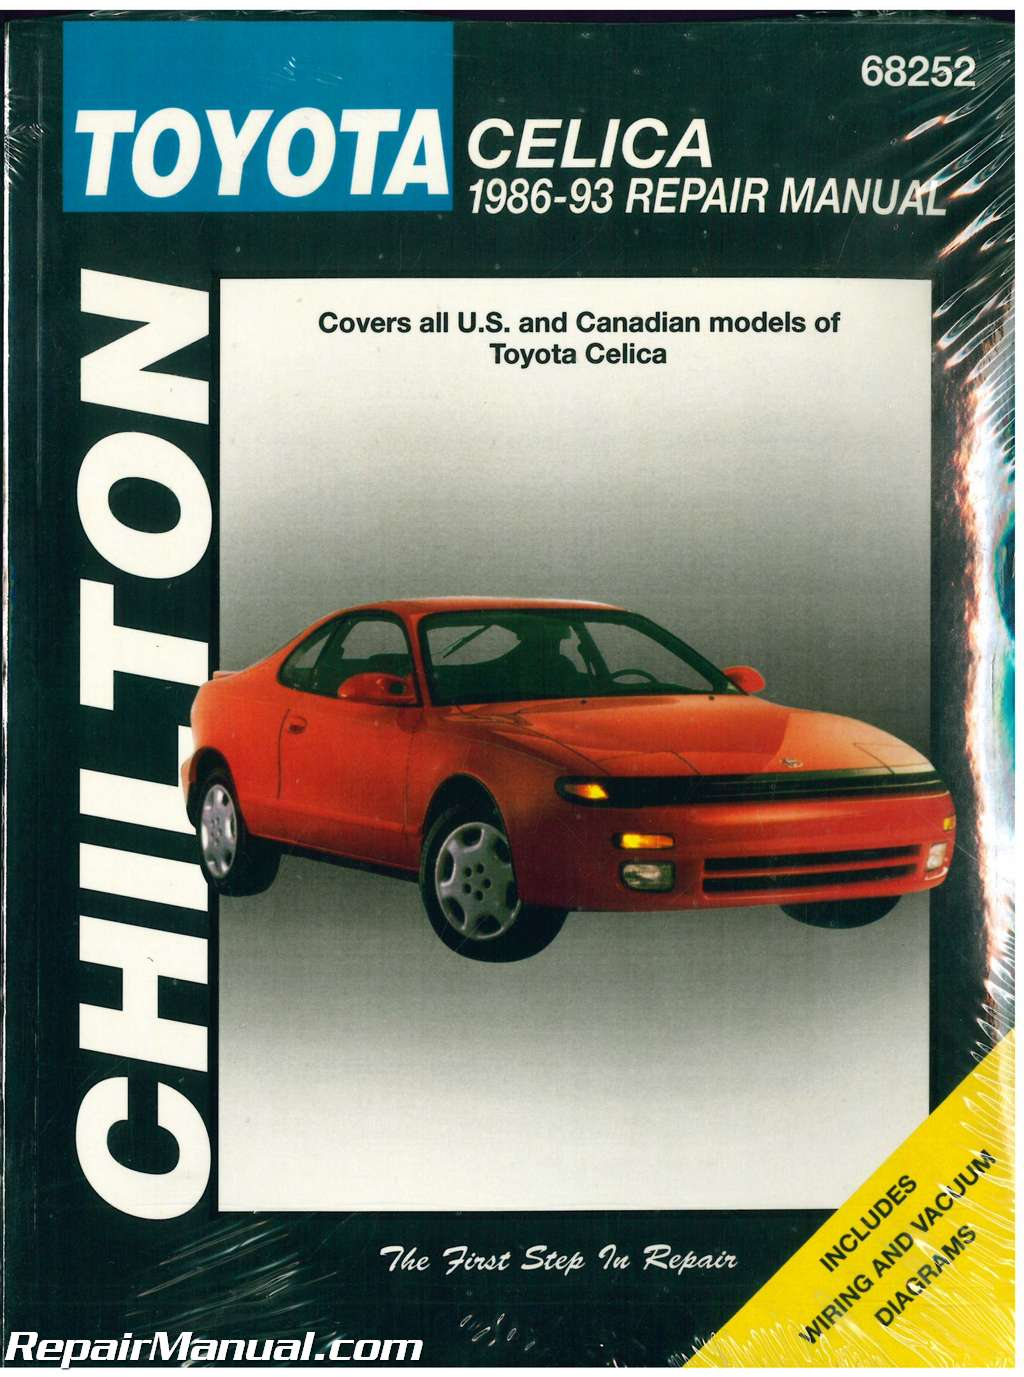 Chilton Toyota Celica 1986 1993 Repair Manual